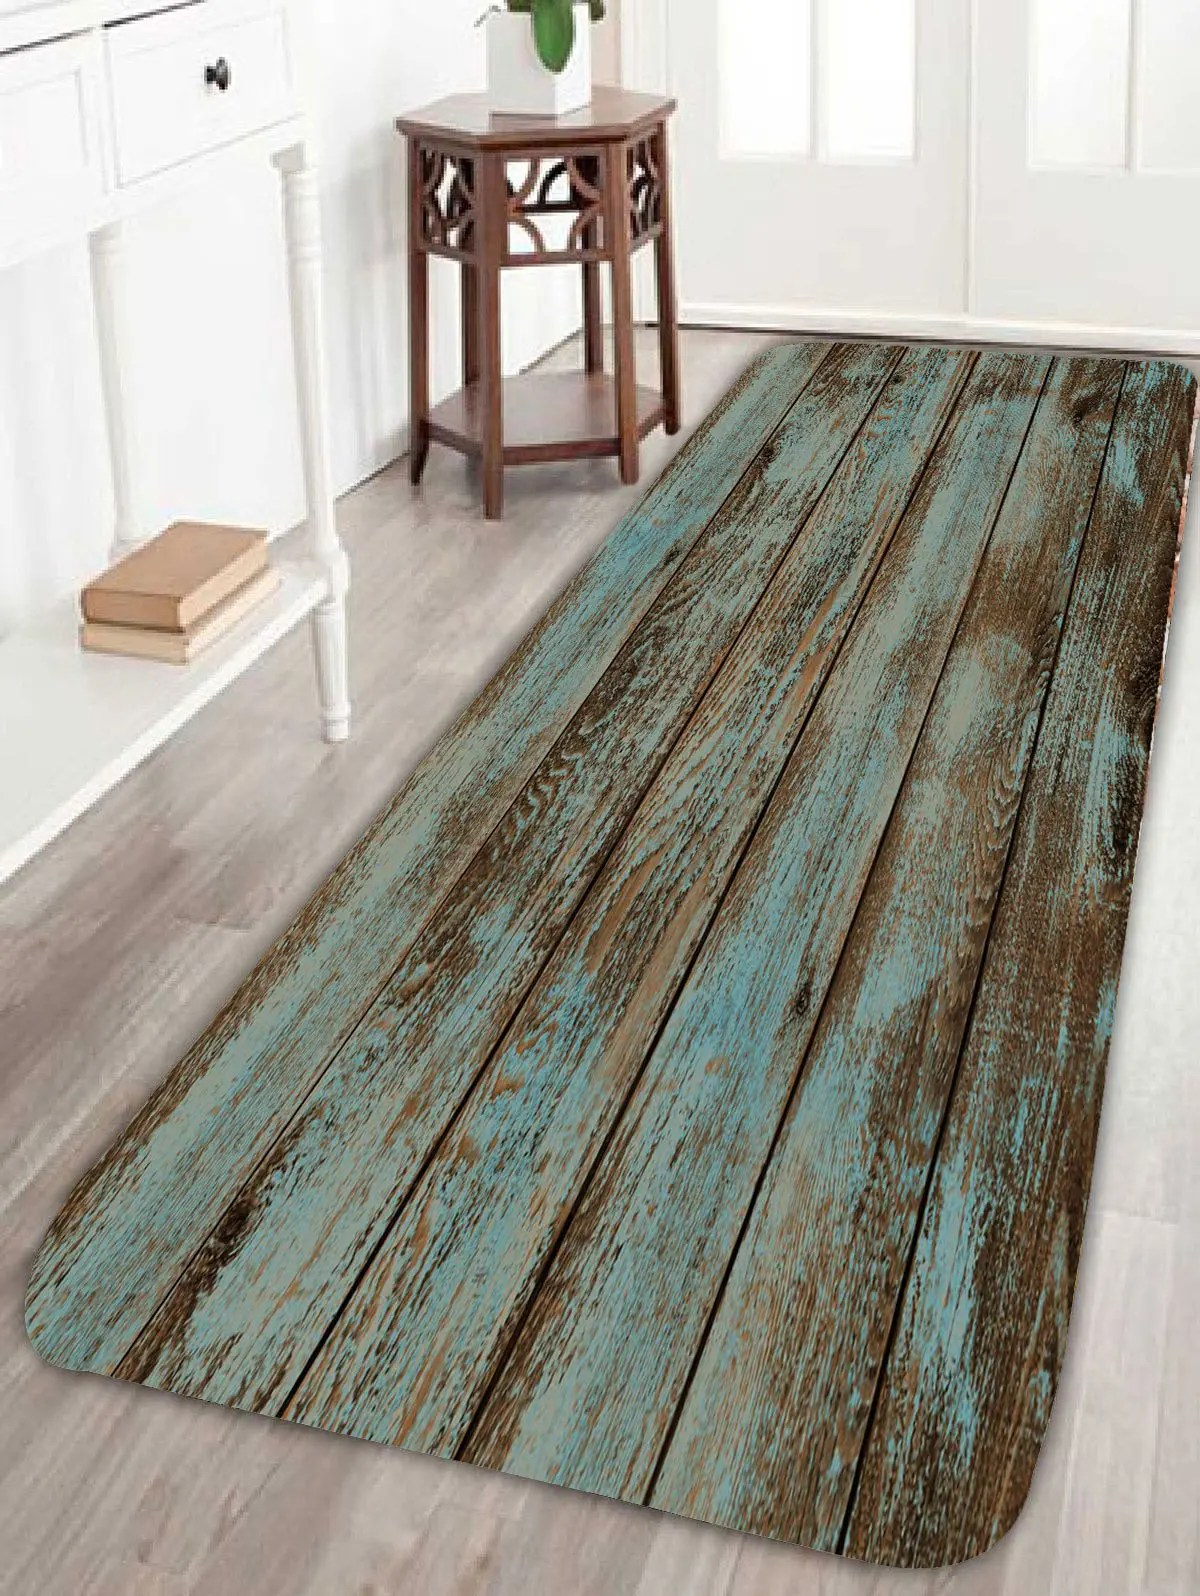 Vloerkleed Badkamer 2018 Wood Grain Print Bathroom Rug Green W Inch L Inch In